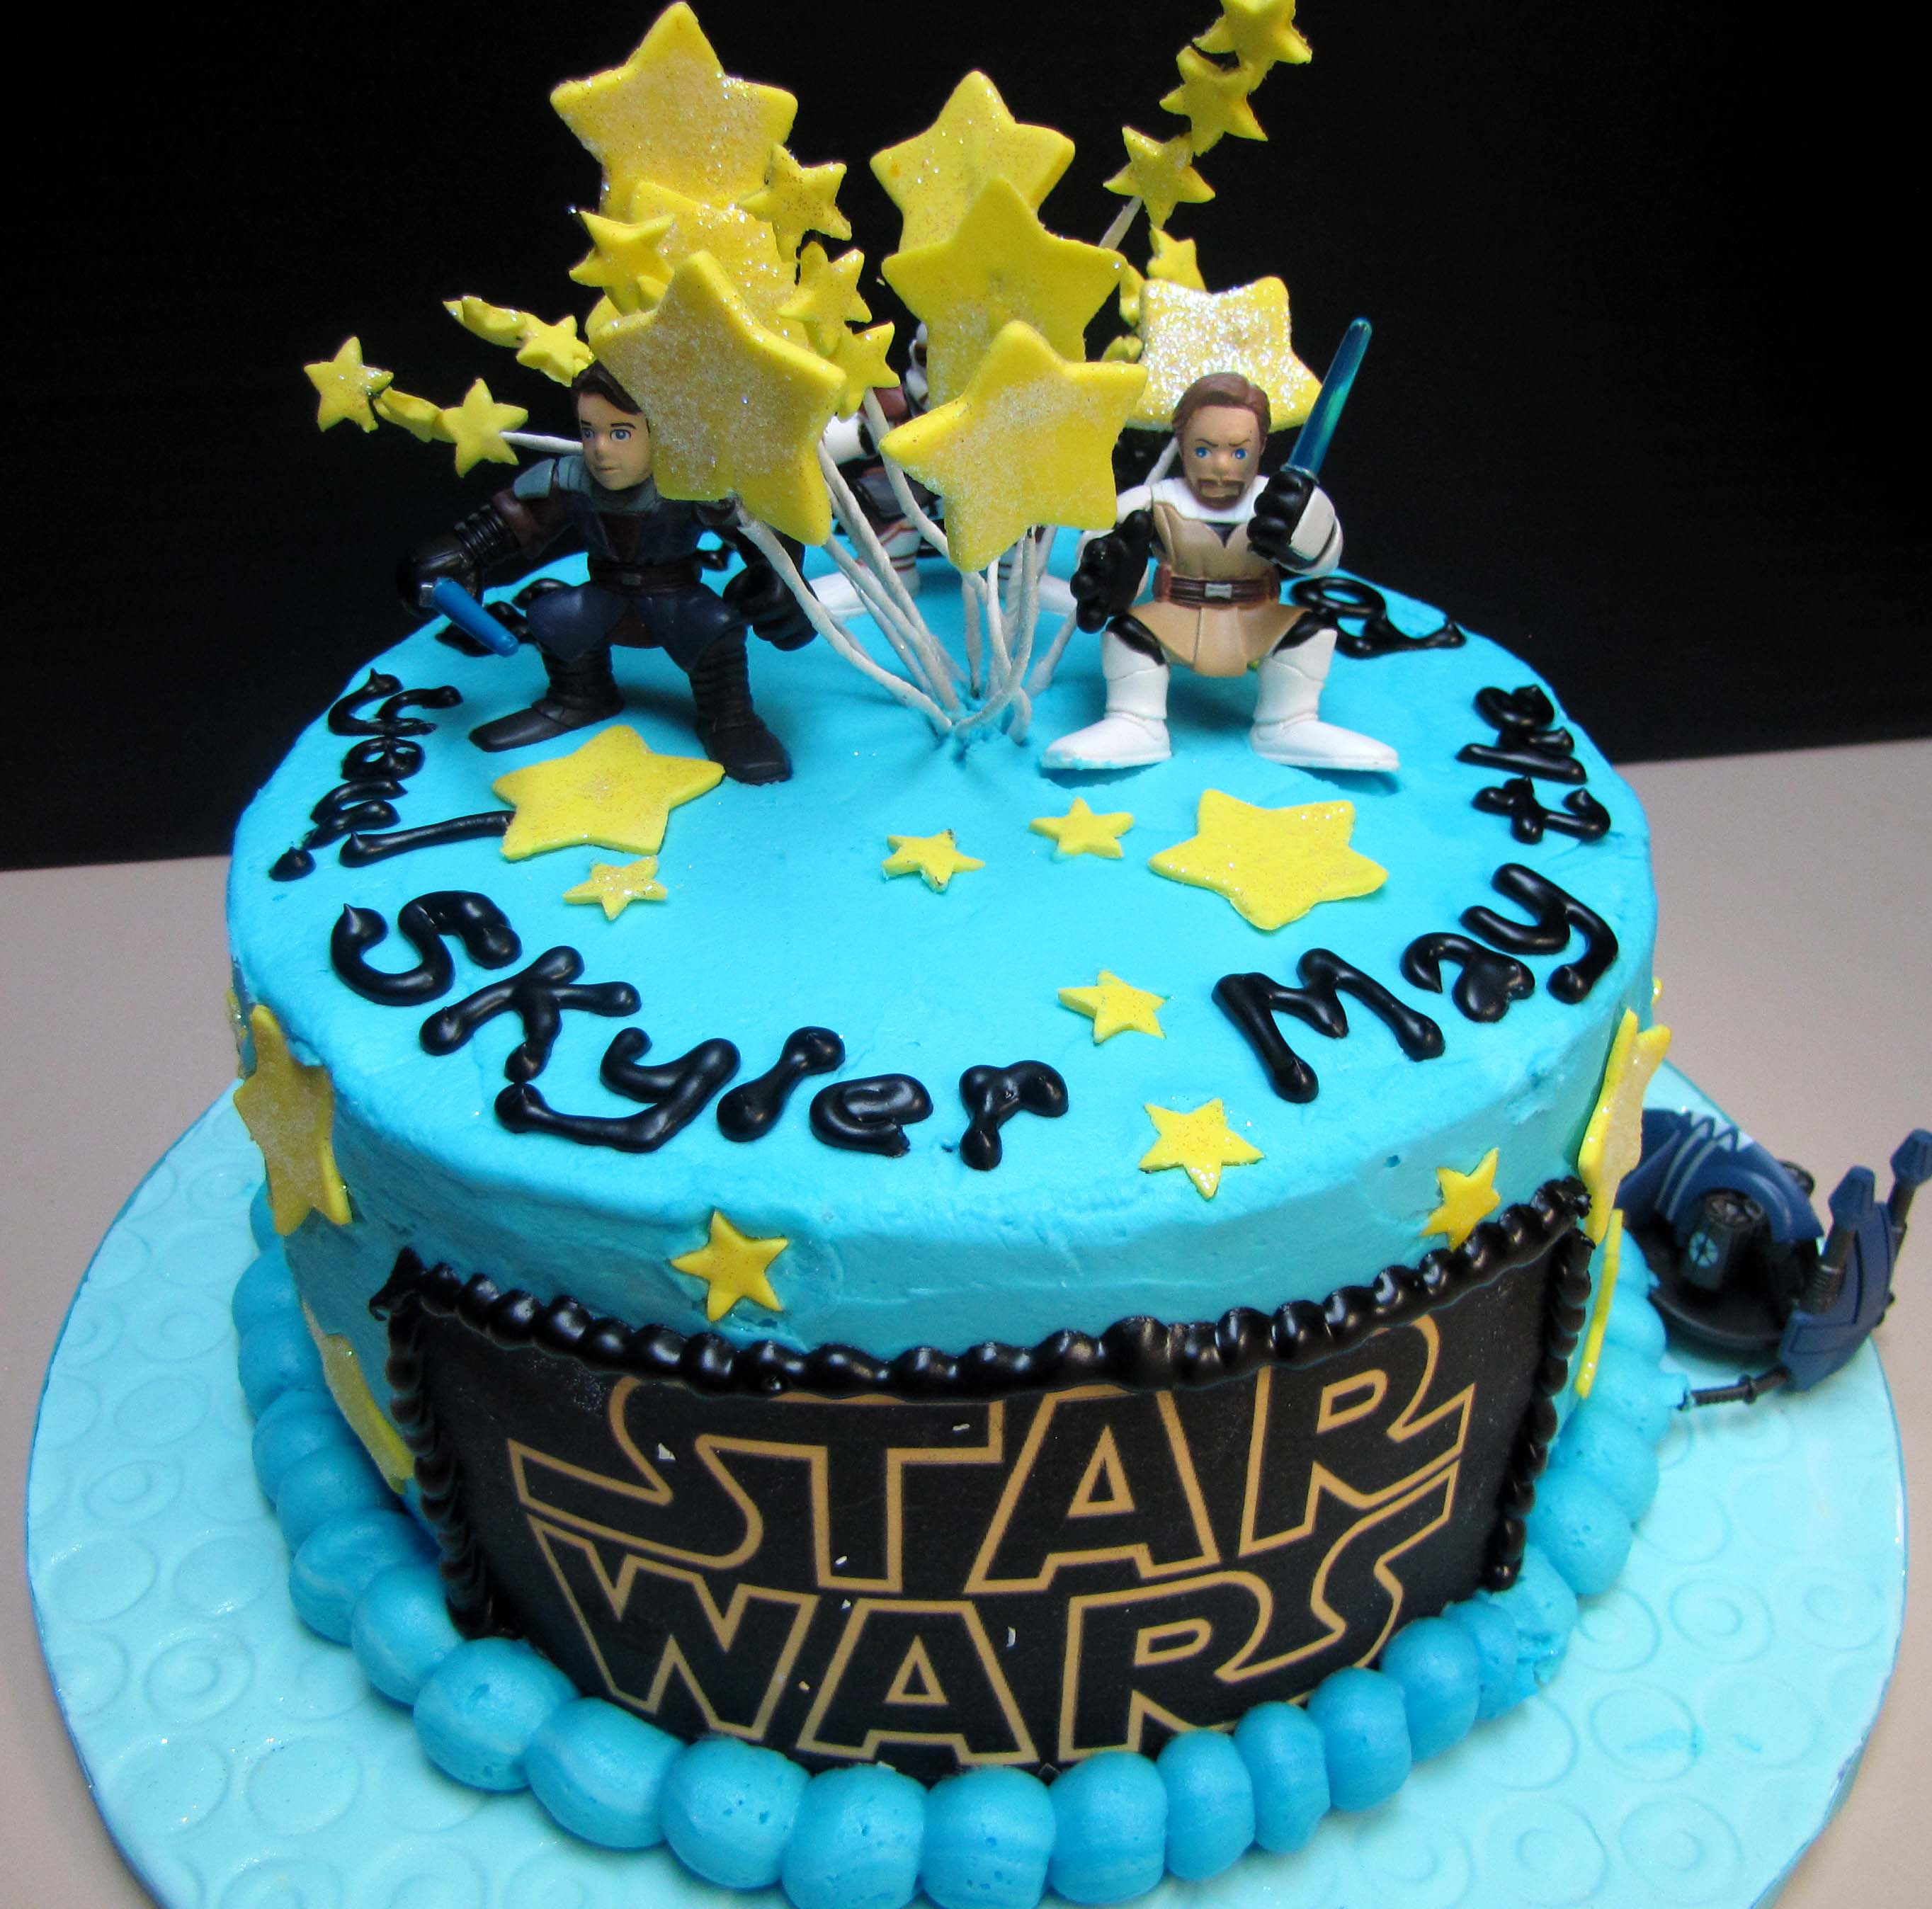 Groovy Birthday Cake Ideas Star Wars The Cake Boutique Birthday Cards Printable Riciscafe Filternl